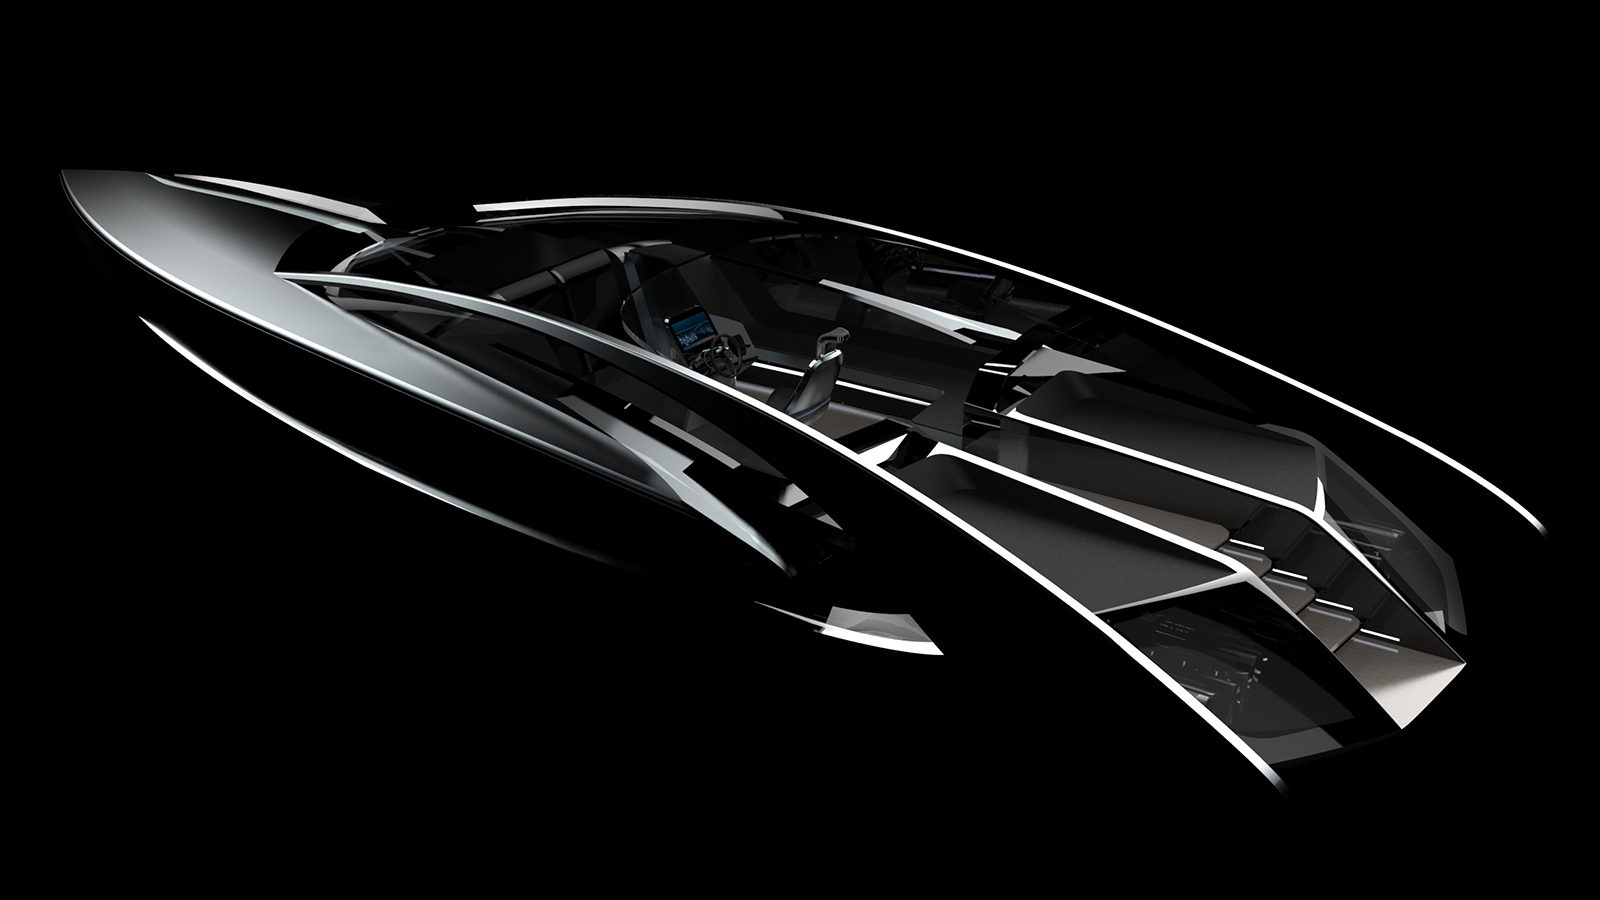 the-aft-view-of-timur-bozca-yacht-concept-sarco